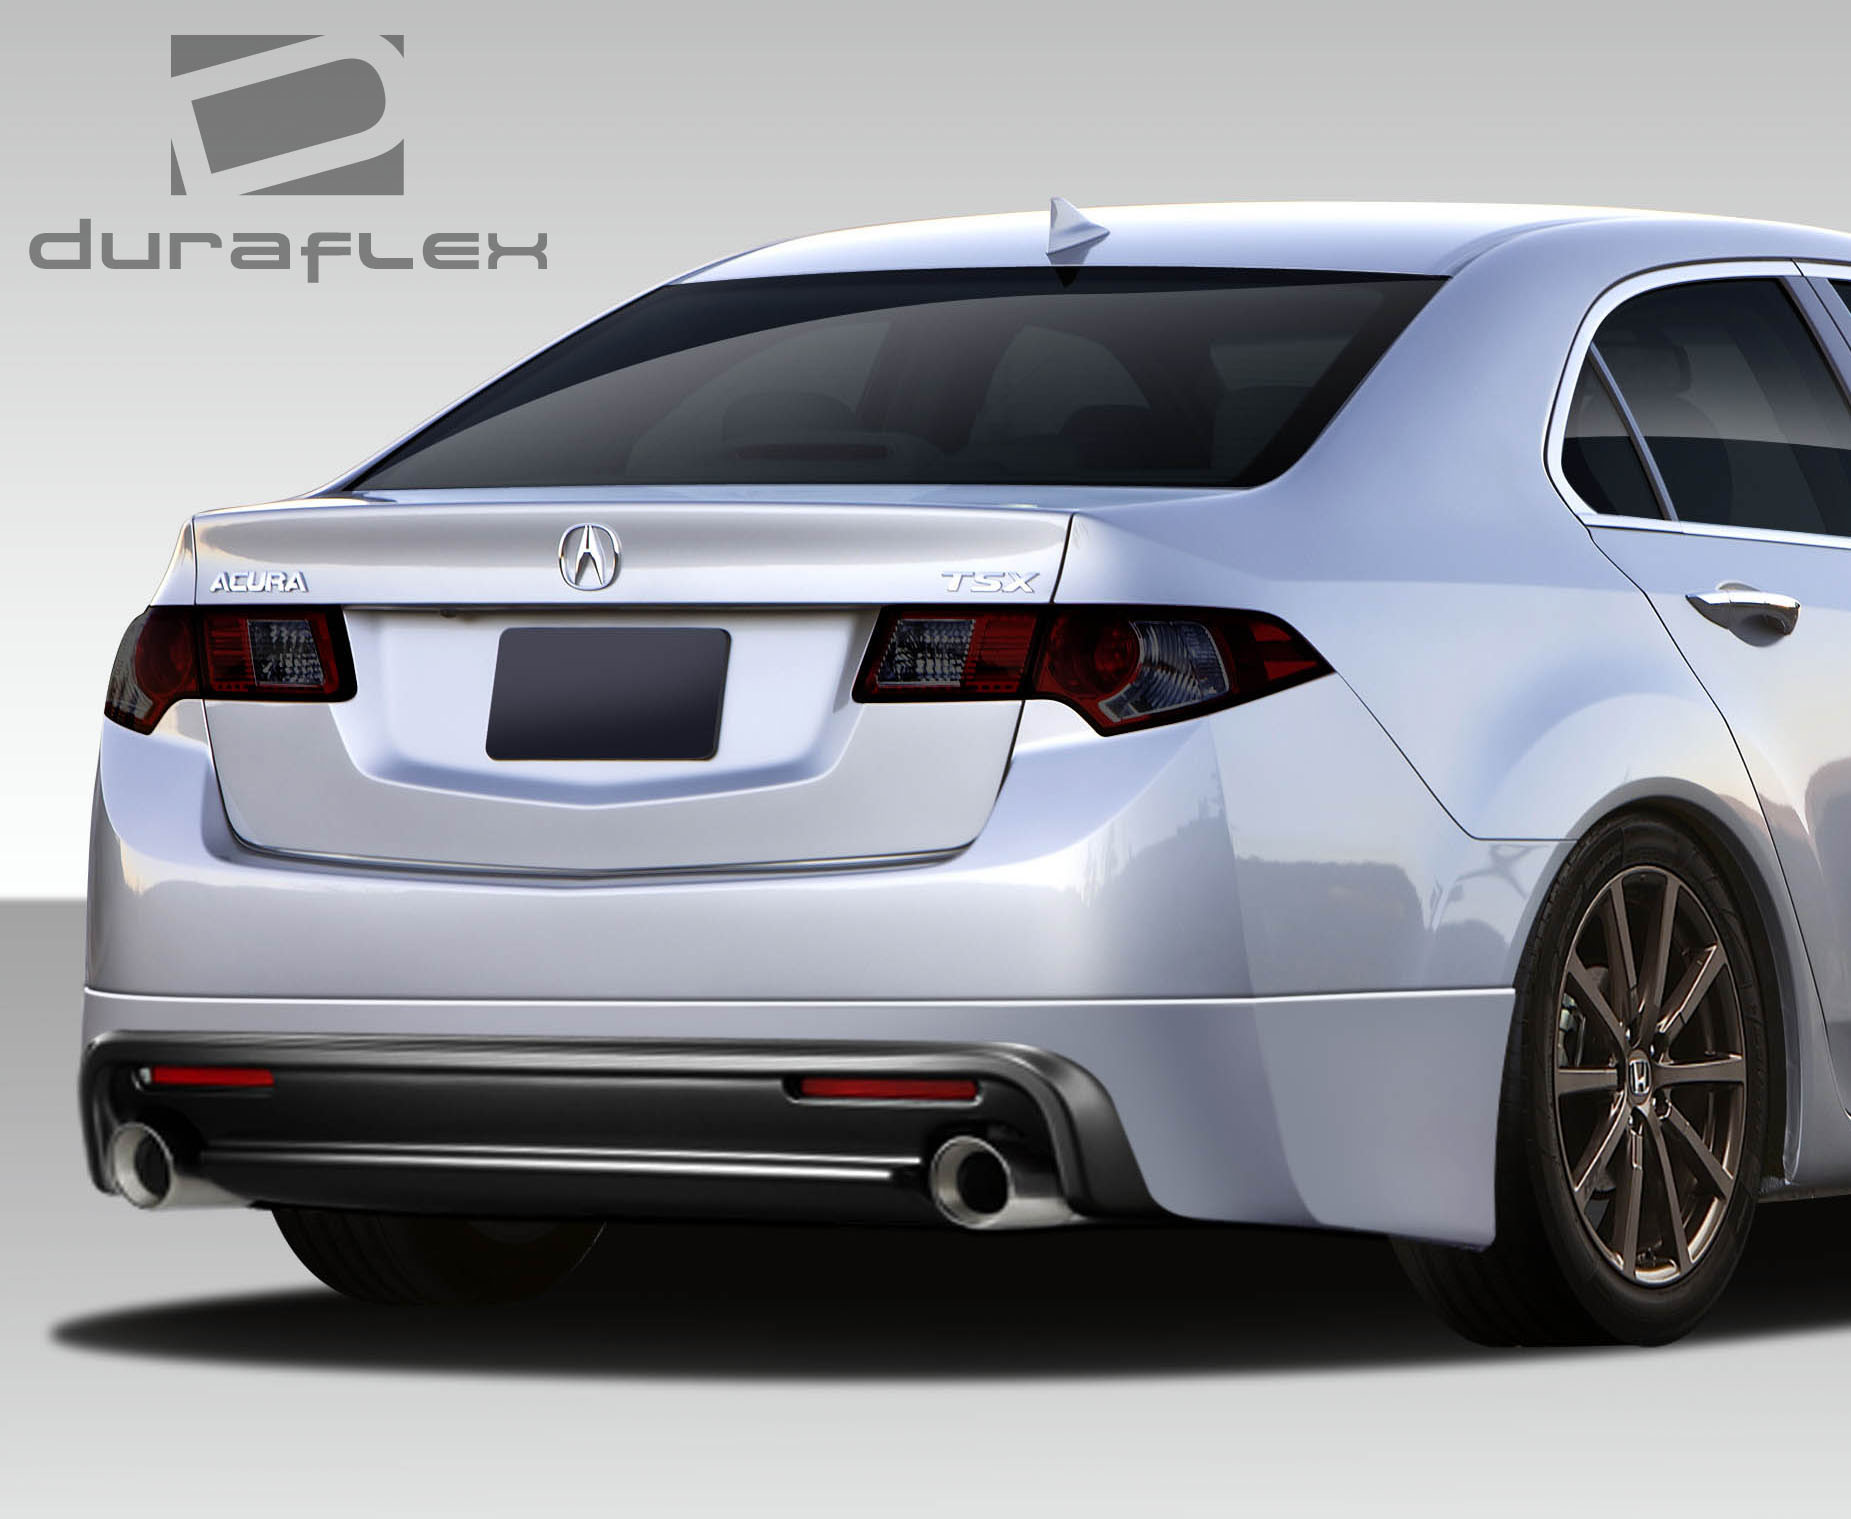 acura tsx 09 10 body kit duraflex type m